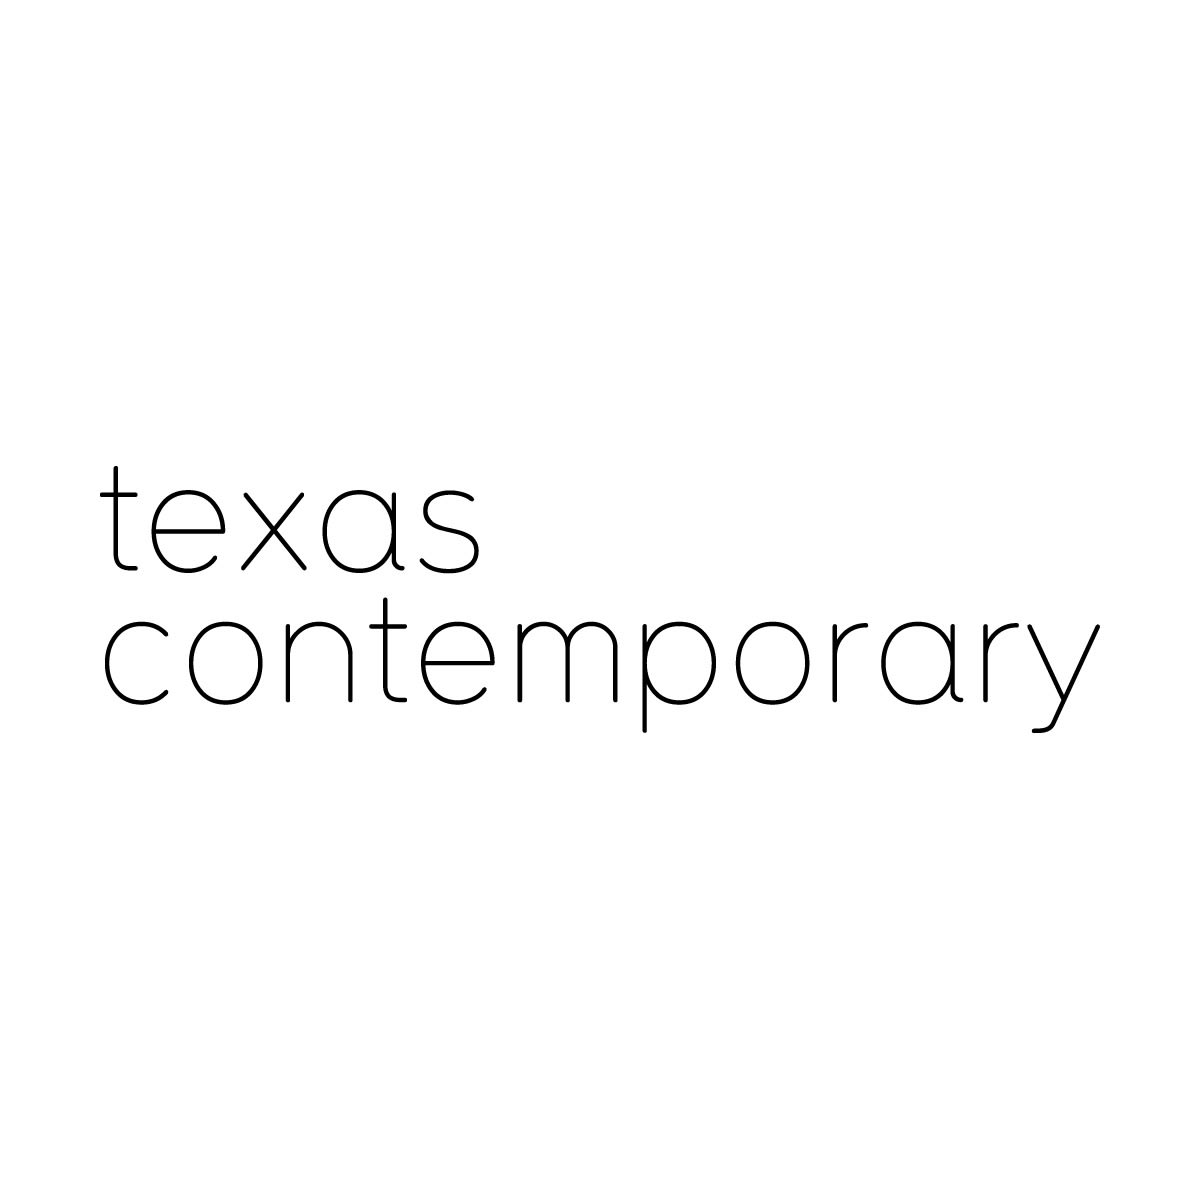 TEXAS CONTEMPORARY